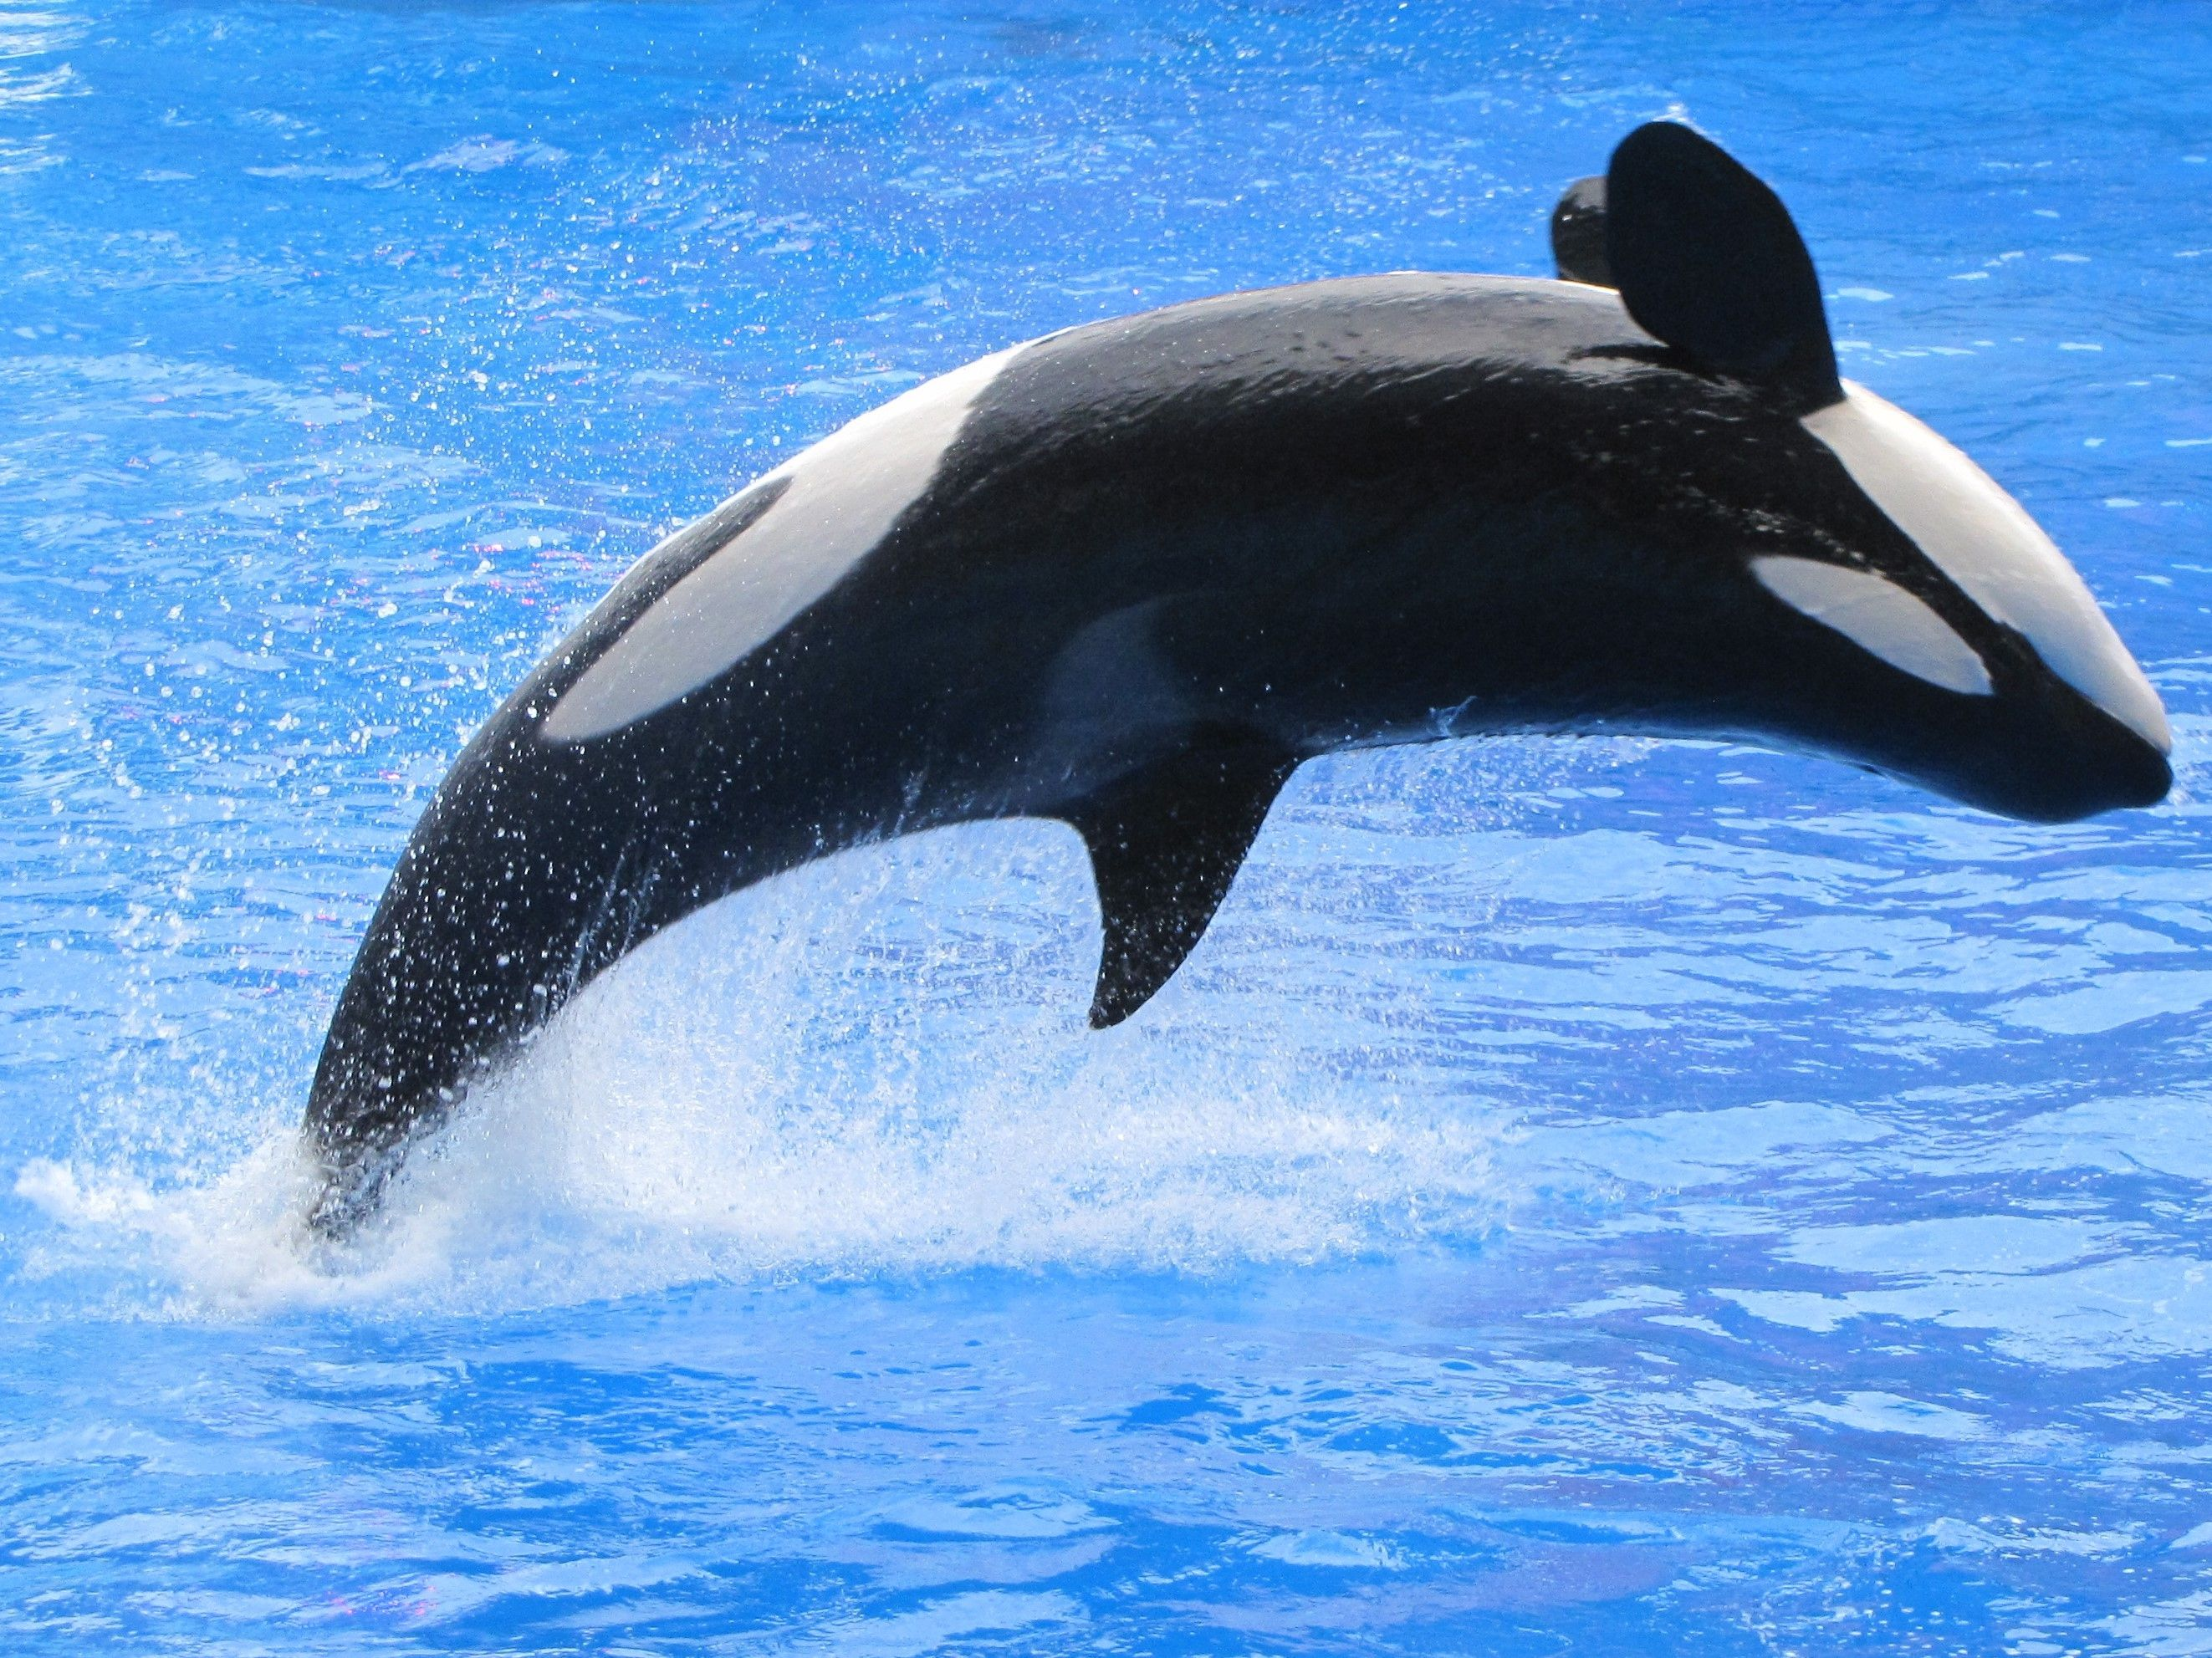 Killer whale jumping in a pool of beautiful blue water.